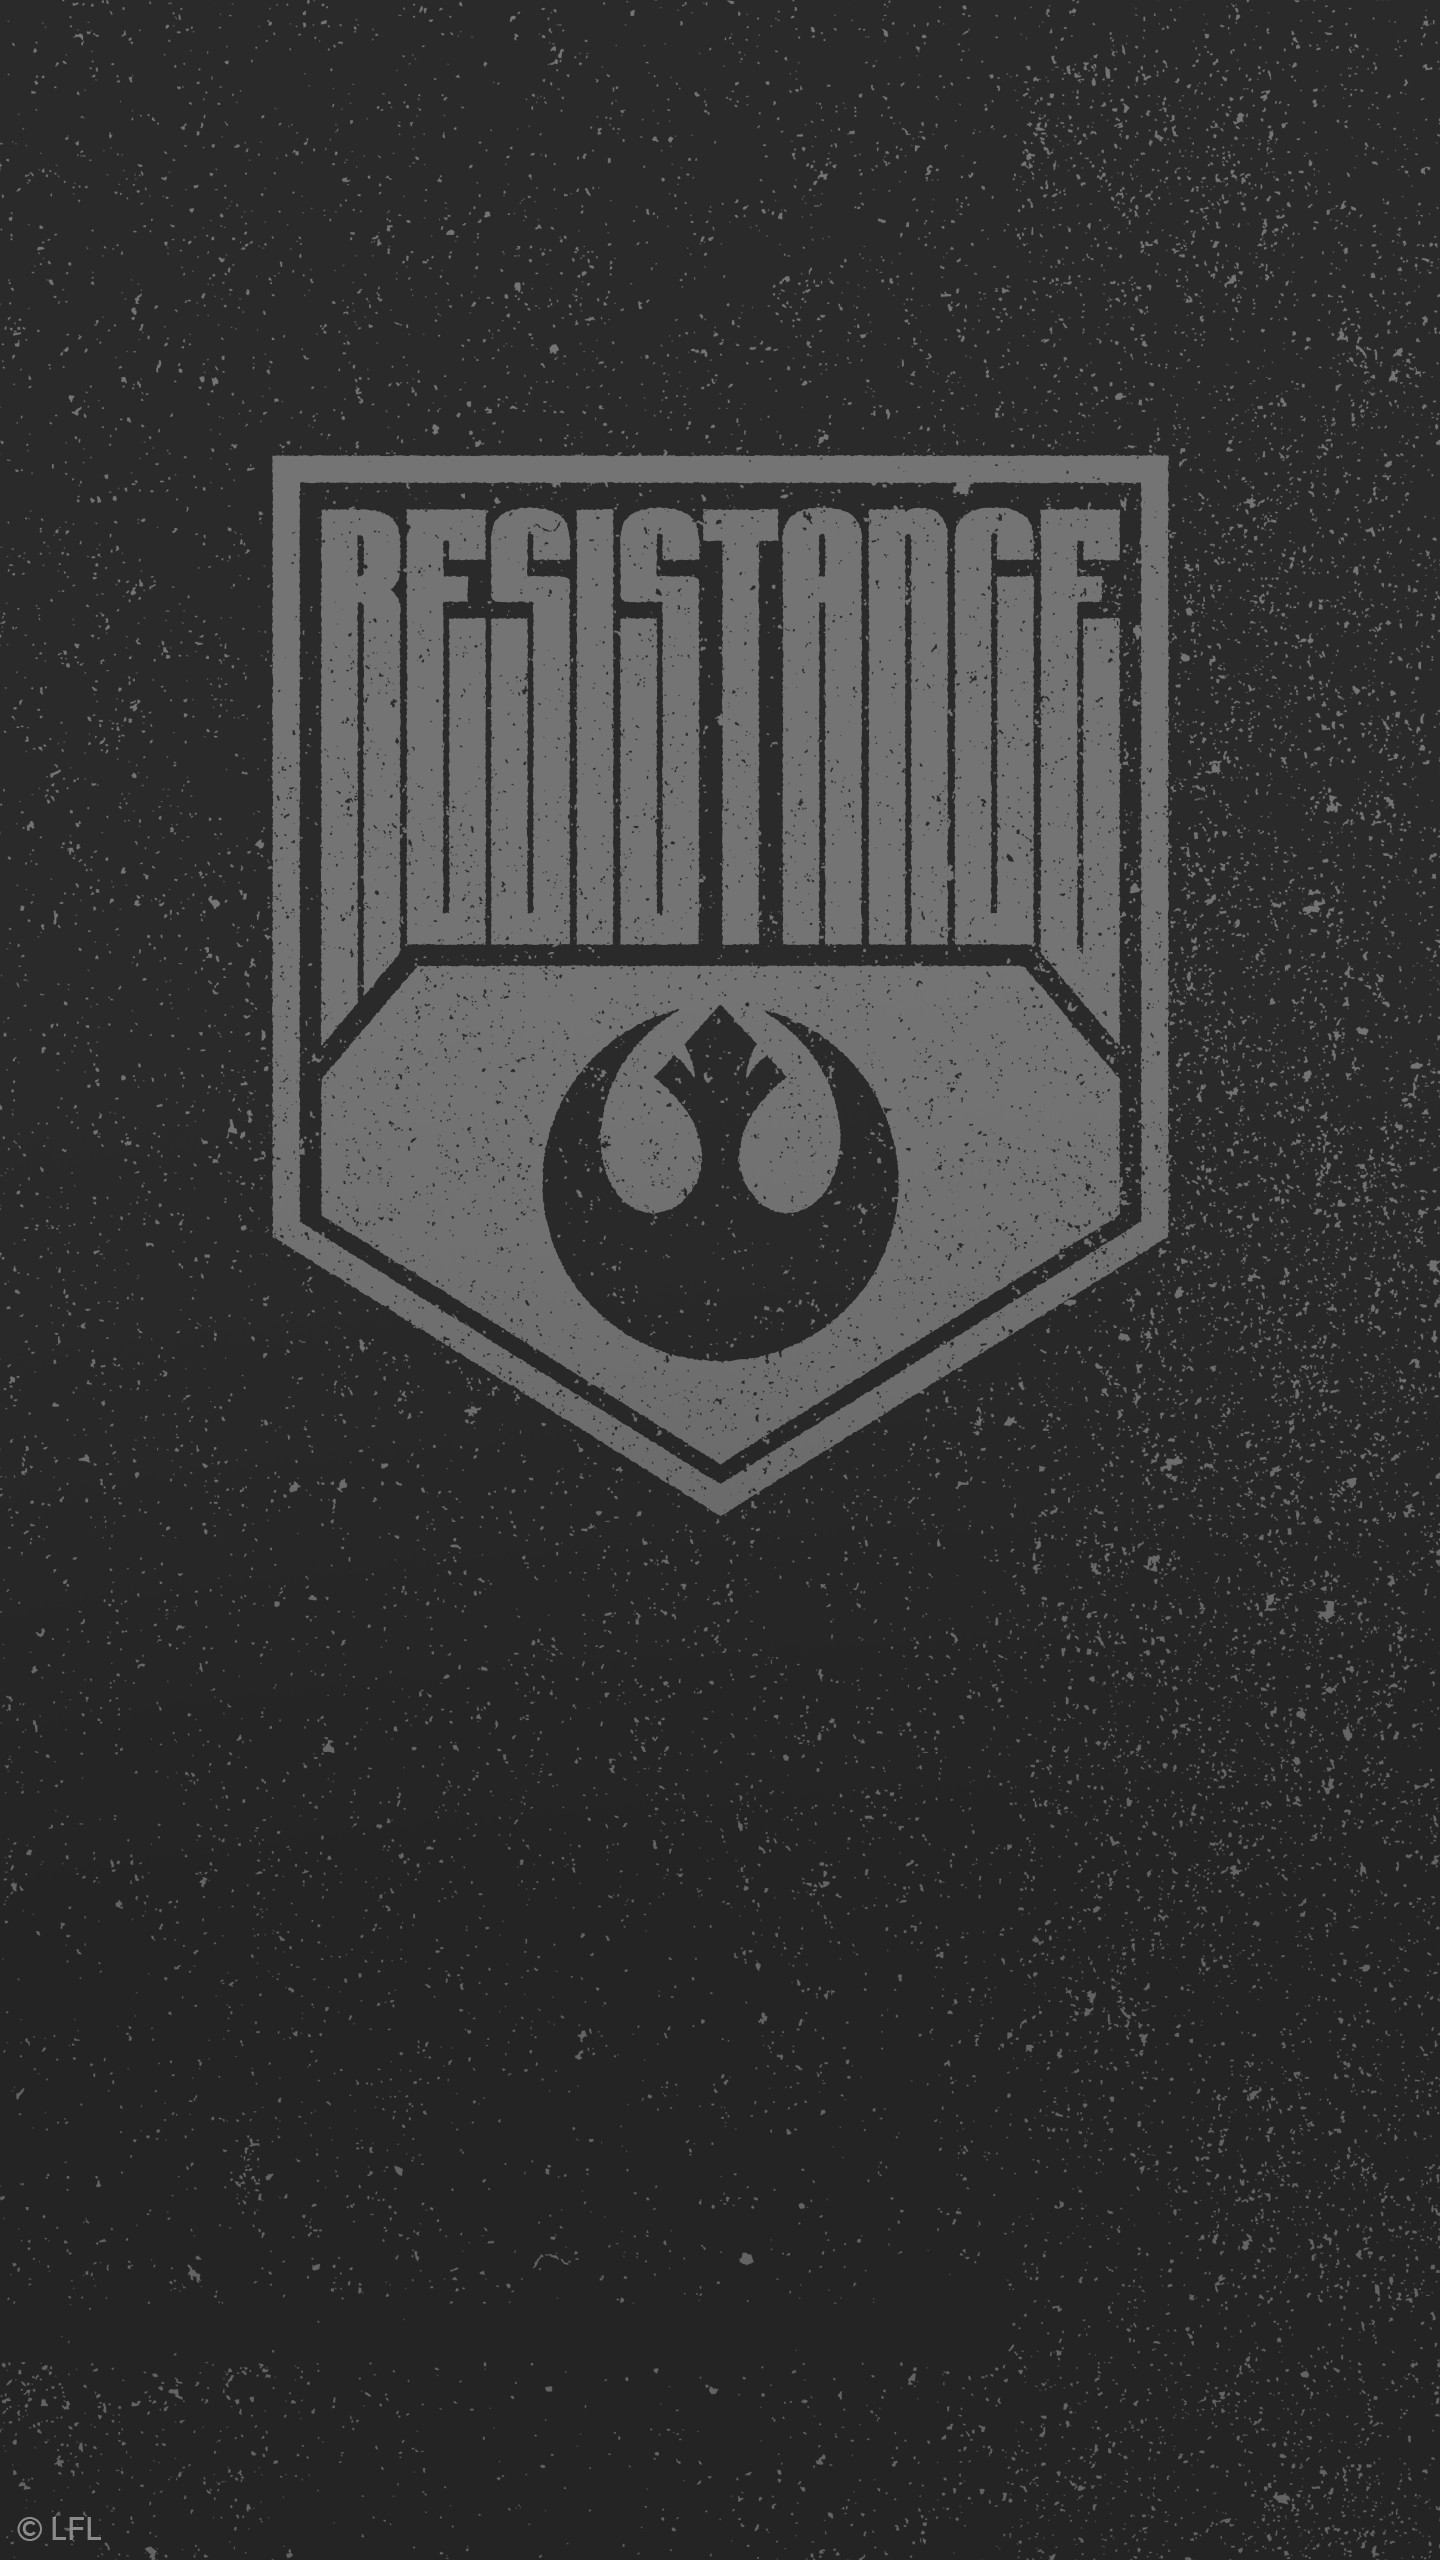 Star Wars: The Force Awakens Wallpaper